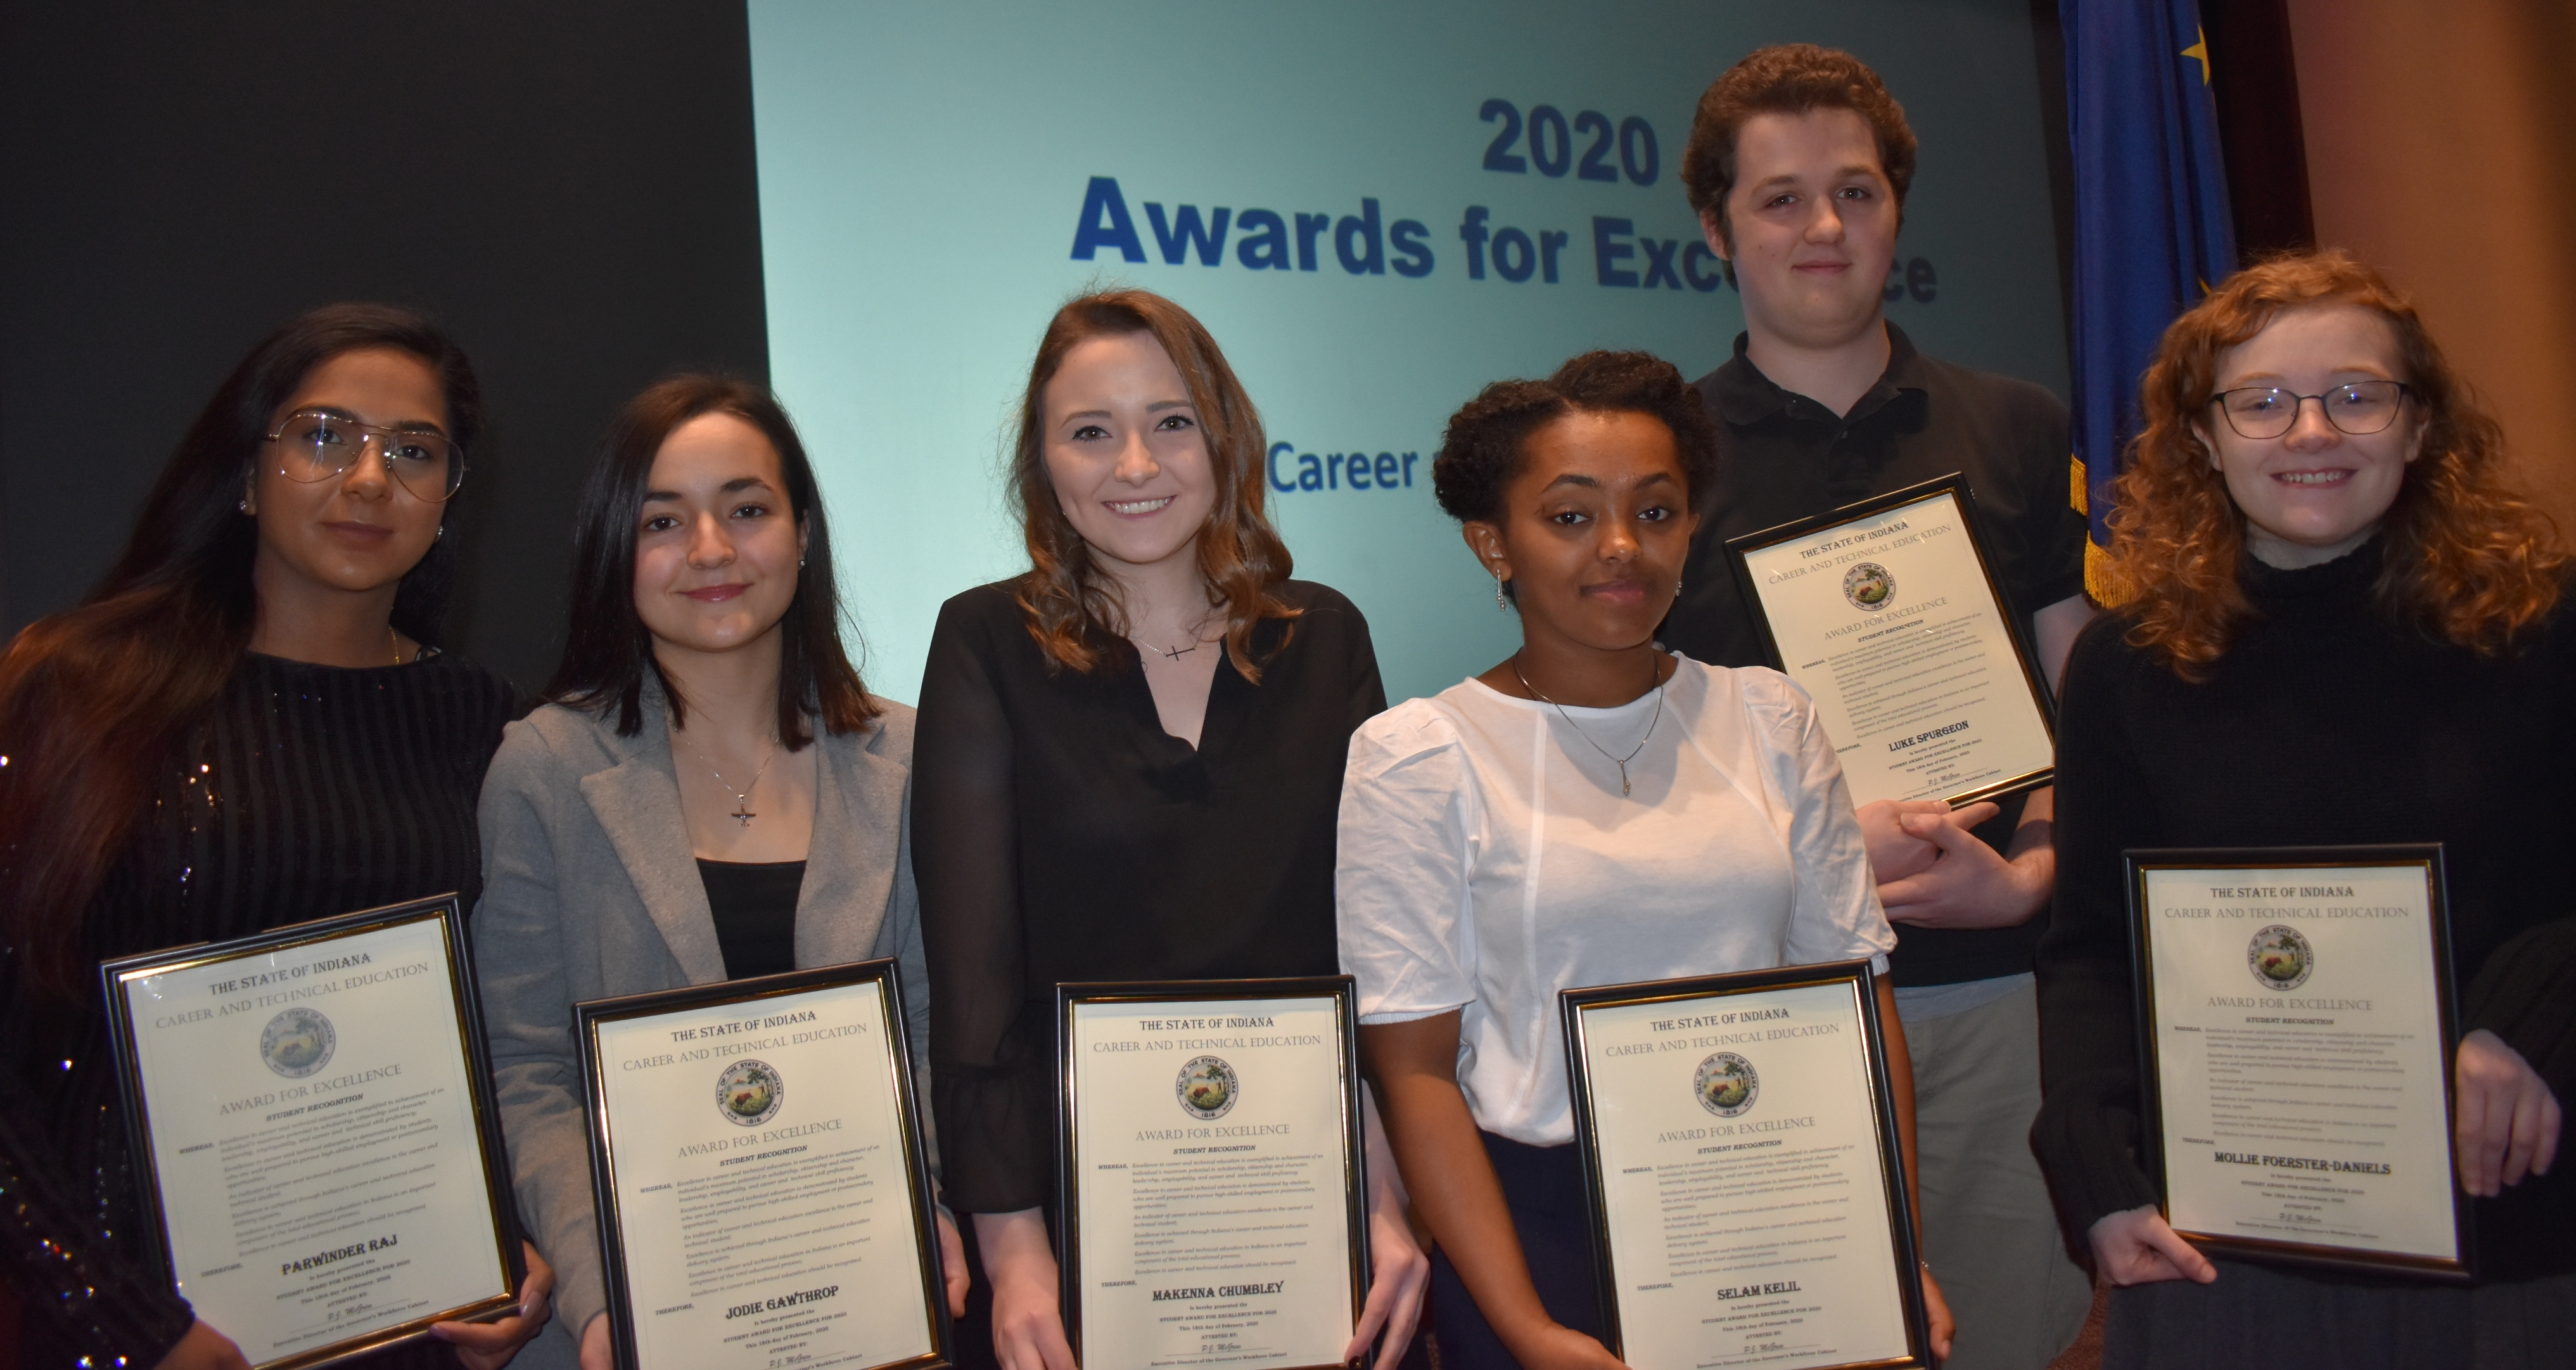 Vincennes University students and programs honored with Awards for Excellence